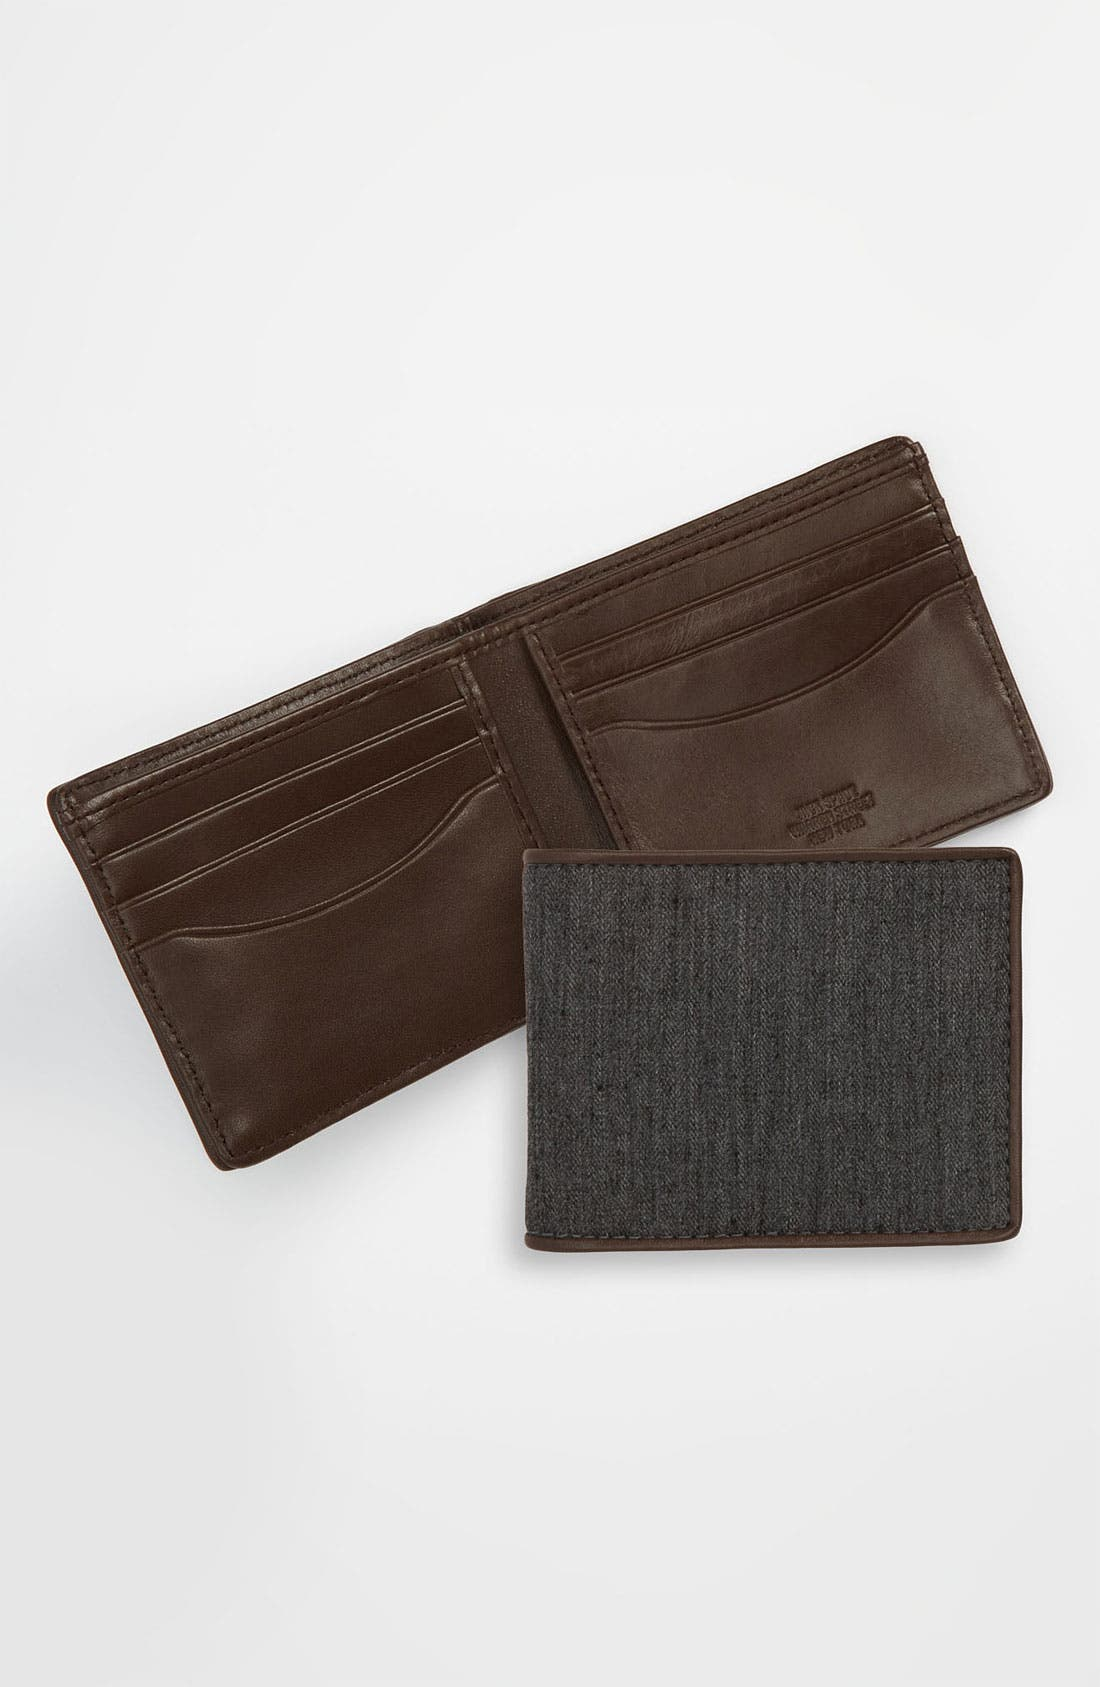 Alternate Image 1 Selected - Jack Spade Herringbone Wallet